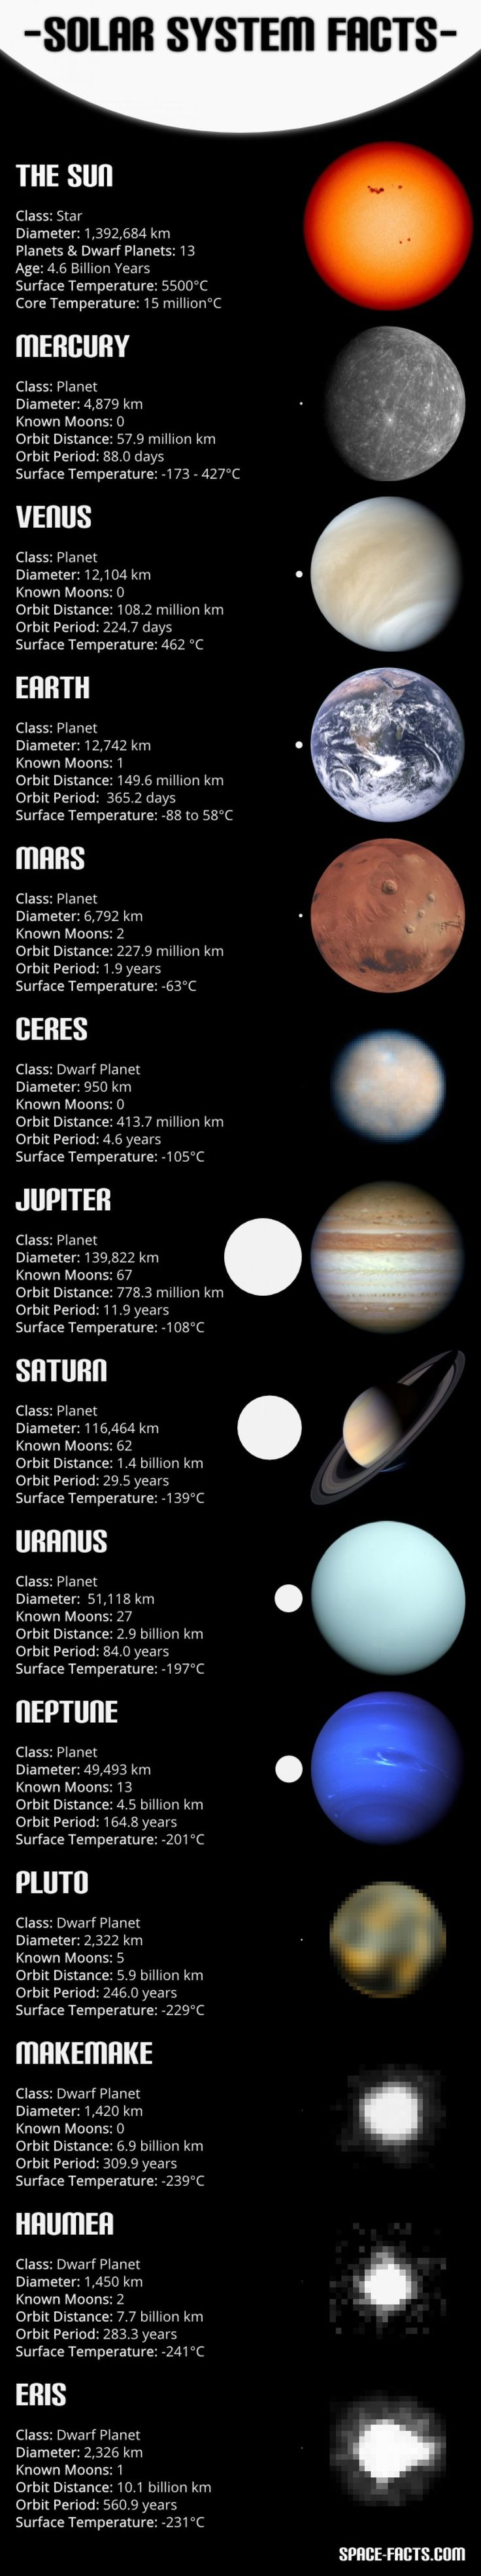 25+ best ideas about Dwarf planet on Pinterest | Planets ...